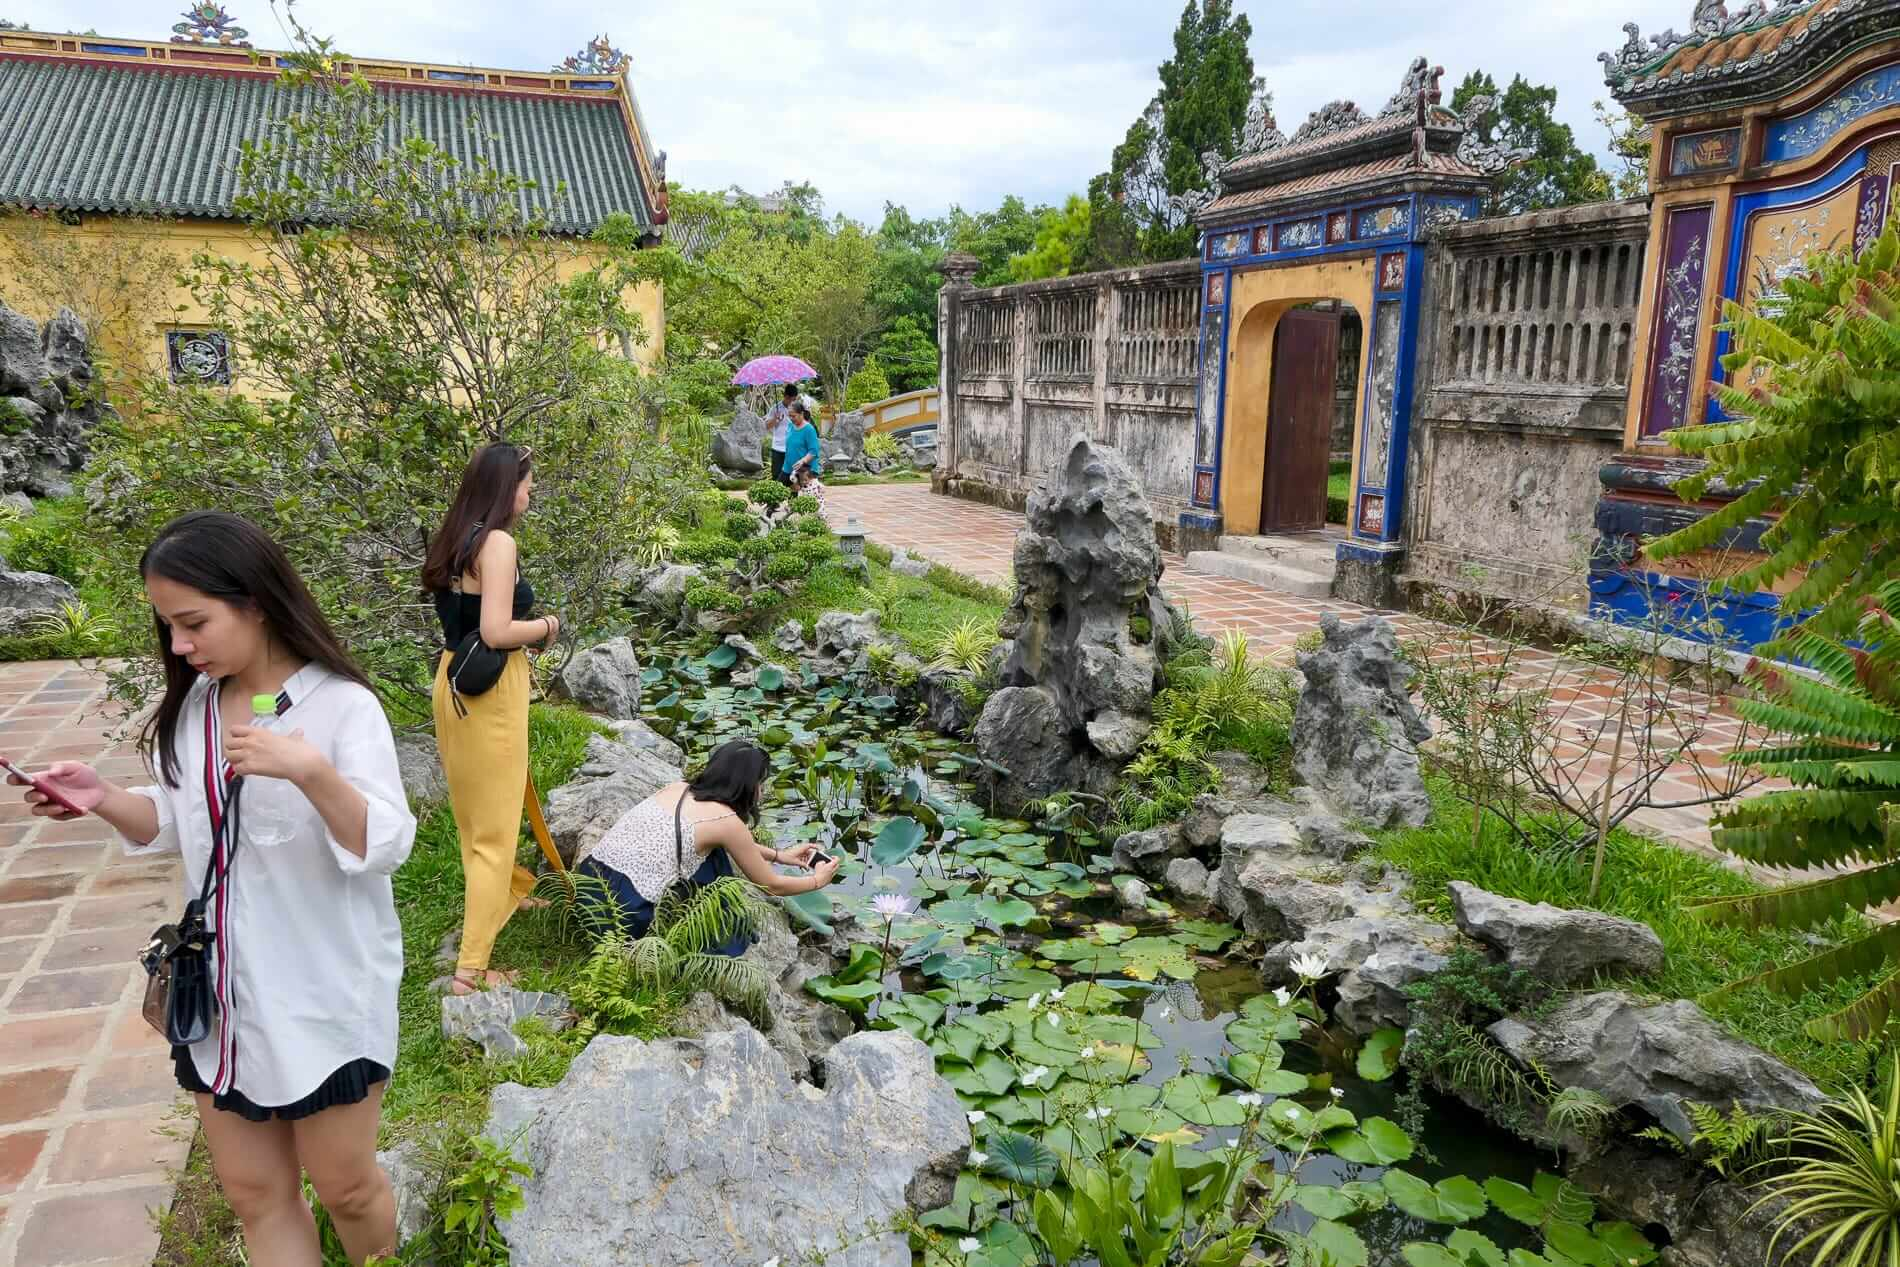 Visitors enjoy the gardens of Hue's ancient buildings